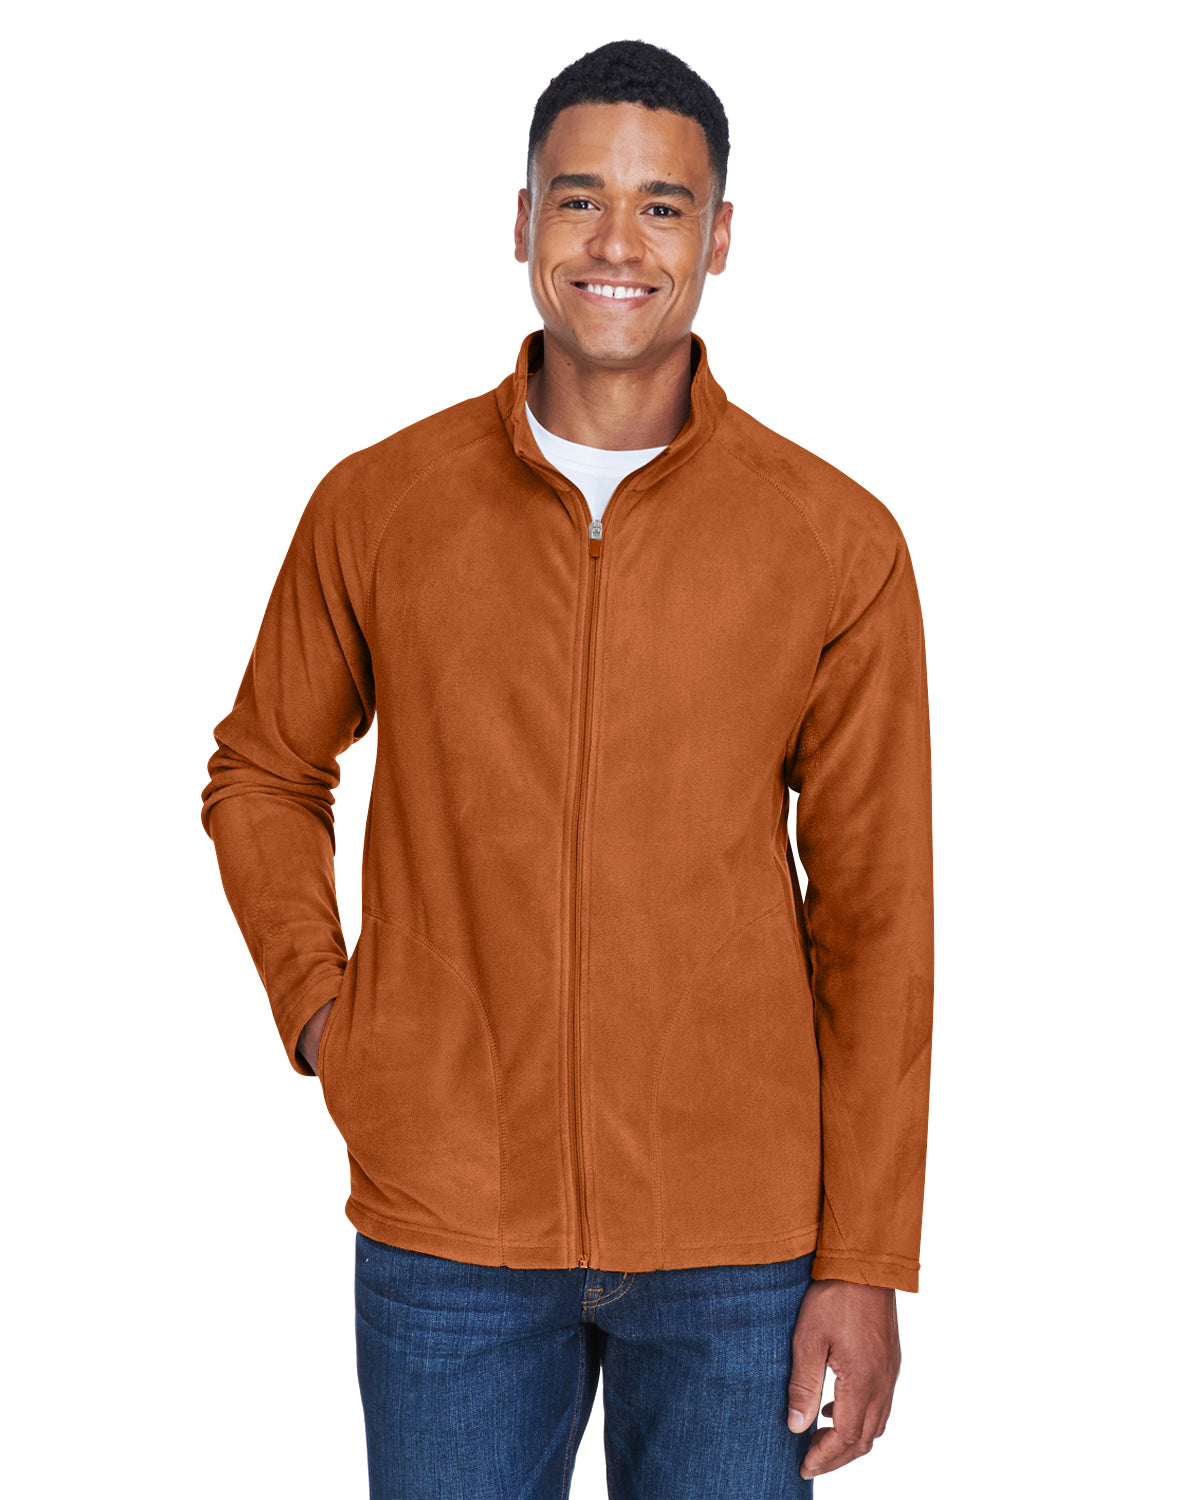 Men's 5.9oz Campus Microfleece Jacket TT90